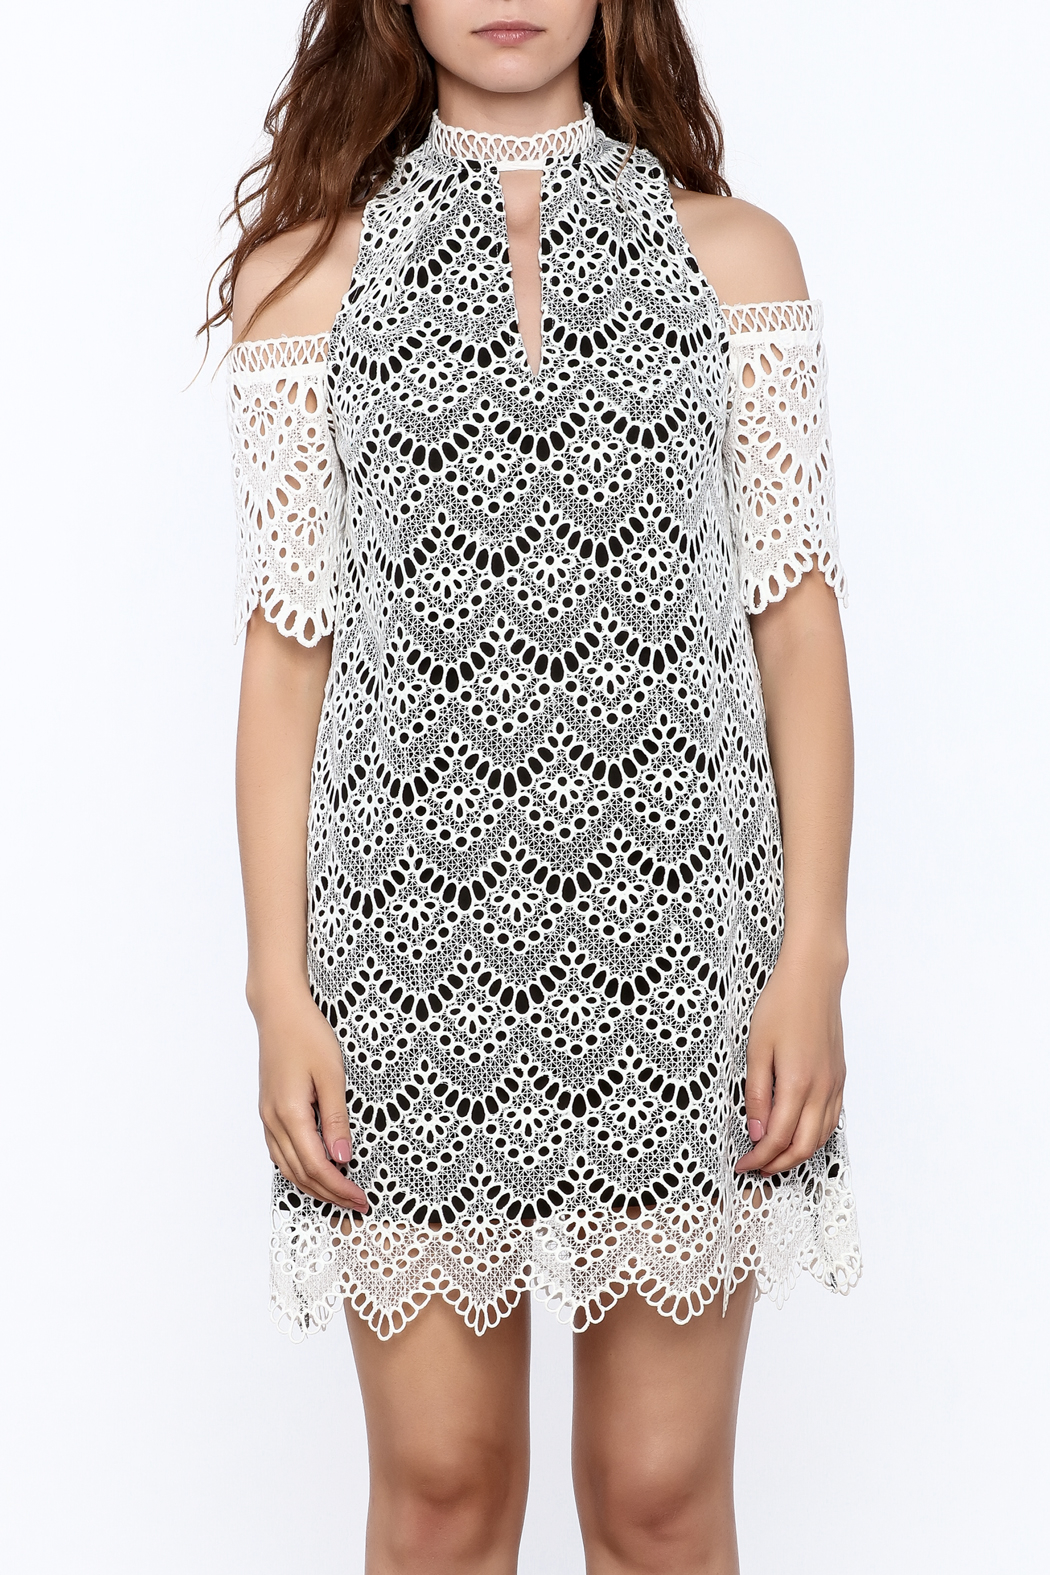 KAS New York Semi Lined Lace Dress - Side Cropped Image